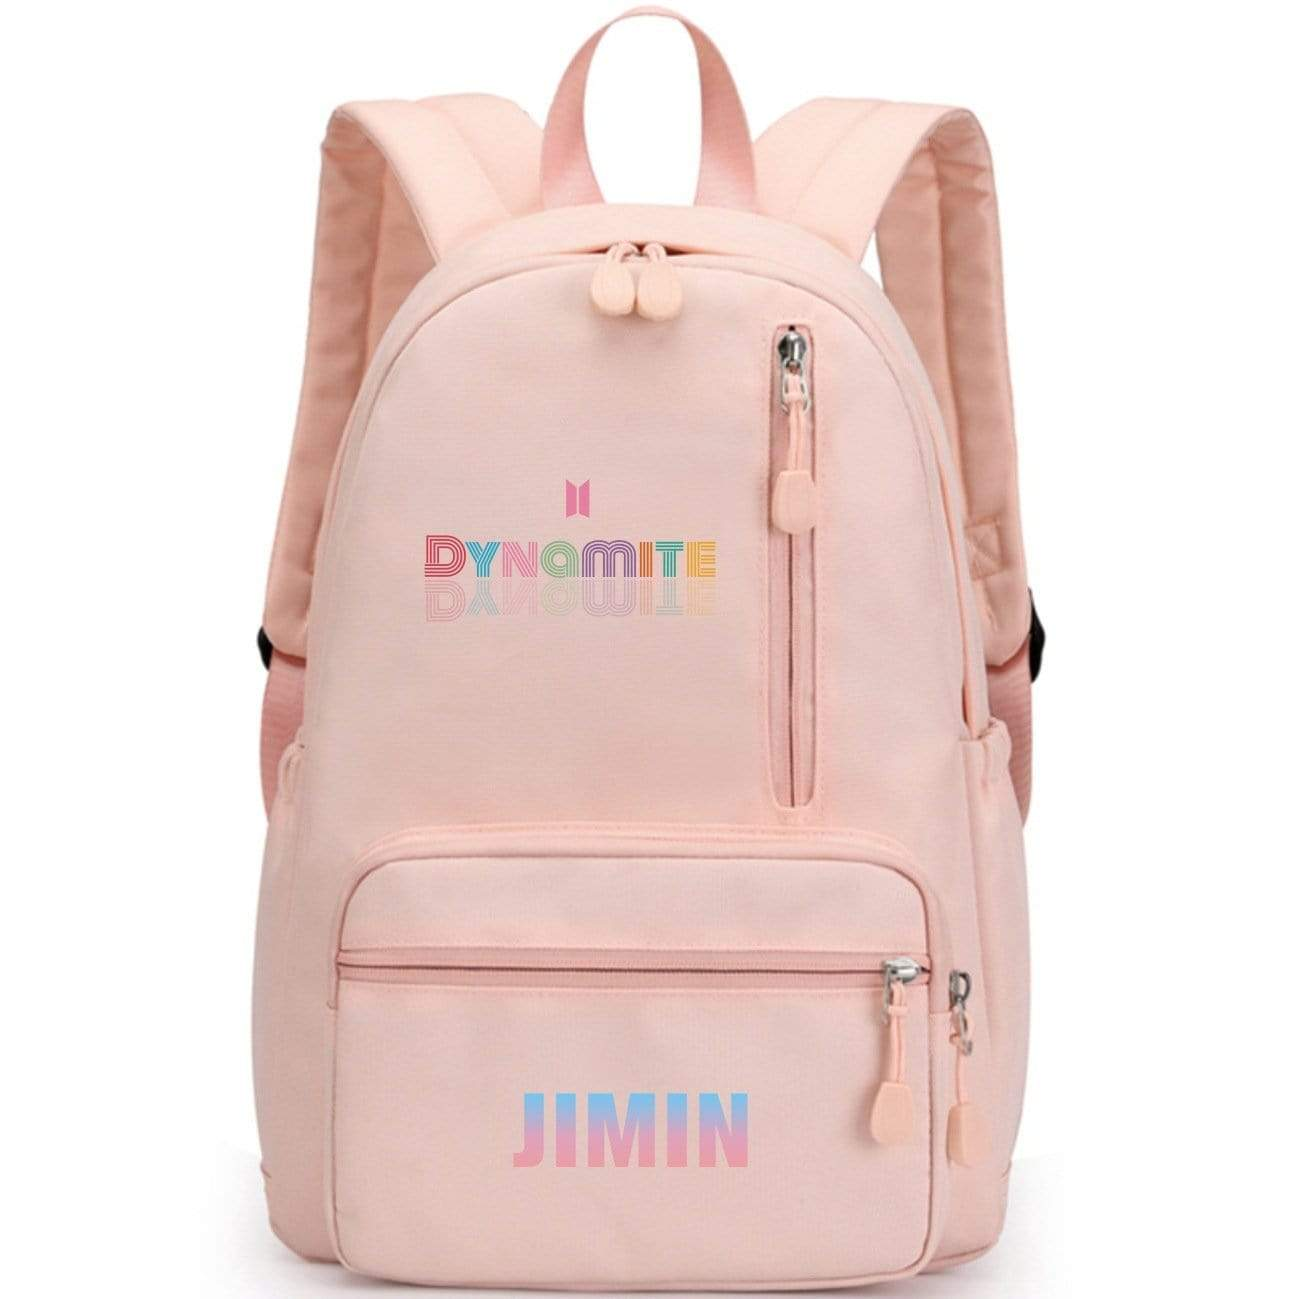 Dynamite Pink Backpack-Stray Kids Merch Shop | Kpop Outfits Store